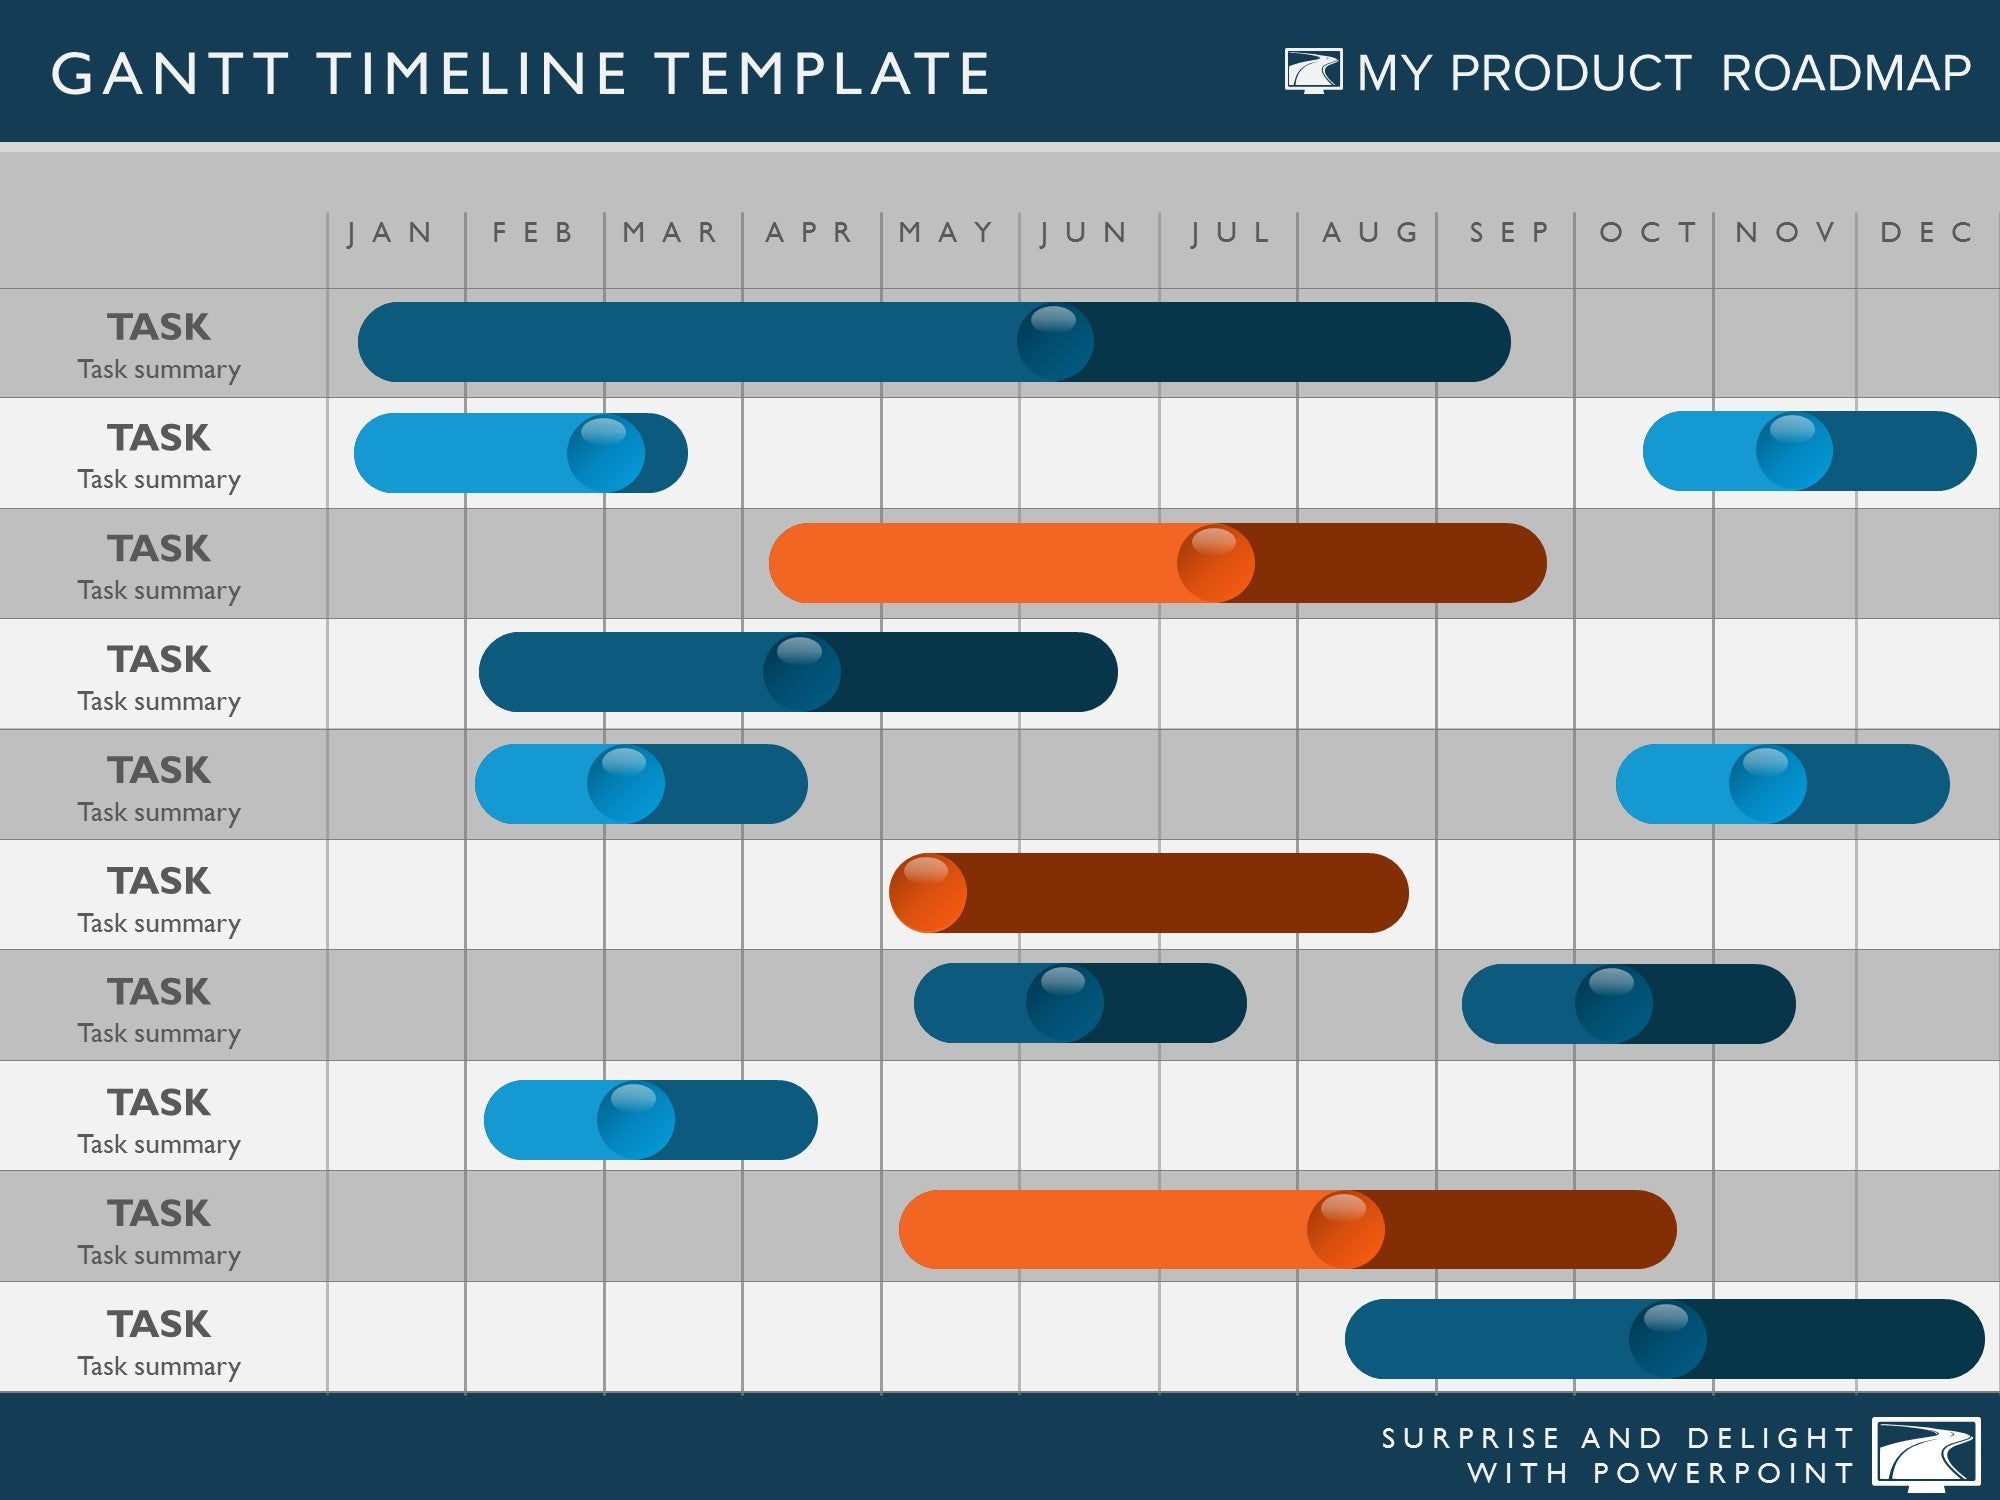 Project Timeline Templates My Product Roadmap - Project plan and timeline template